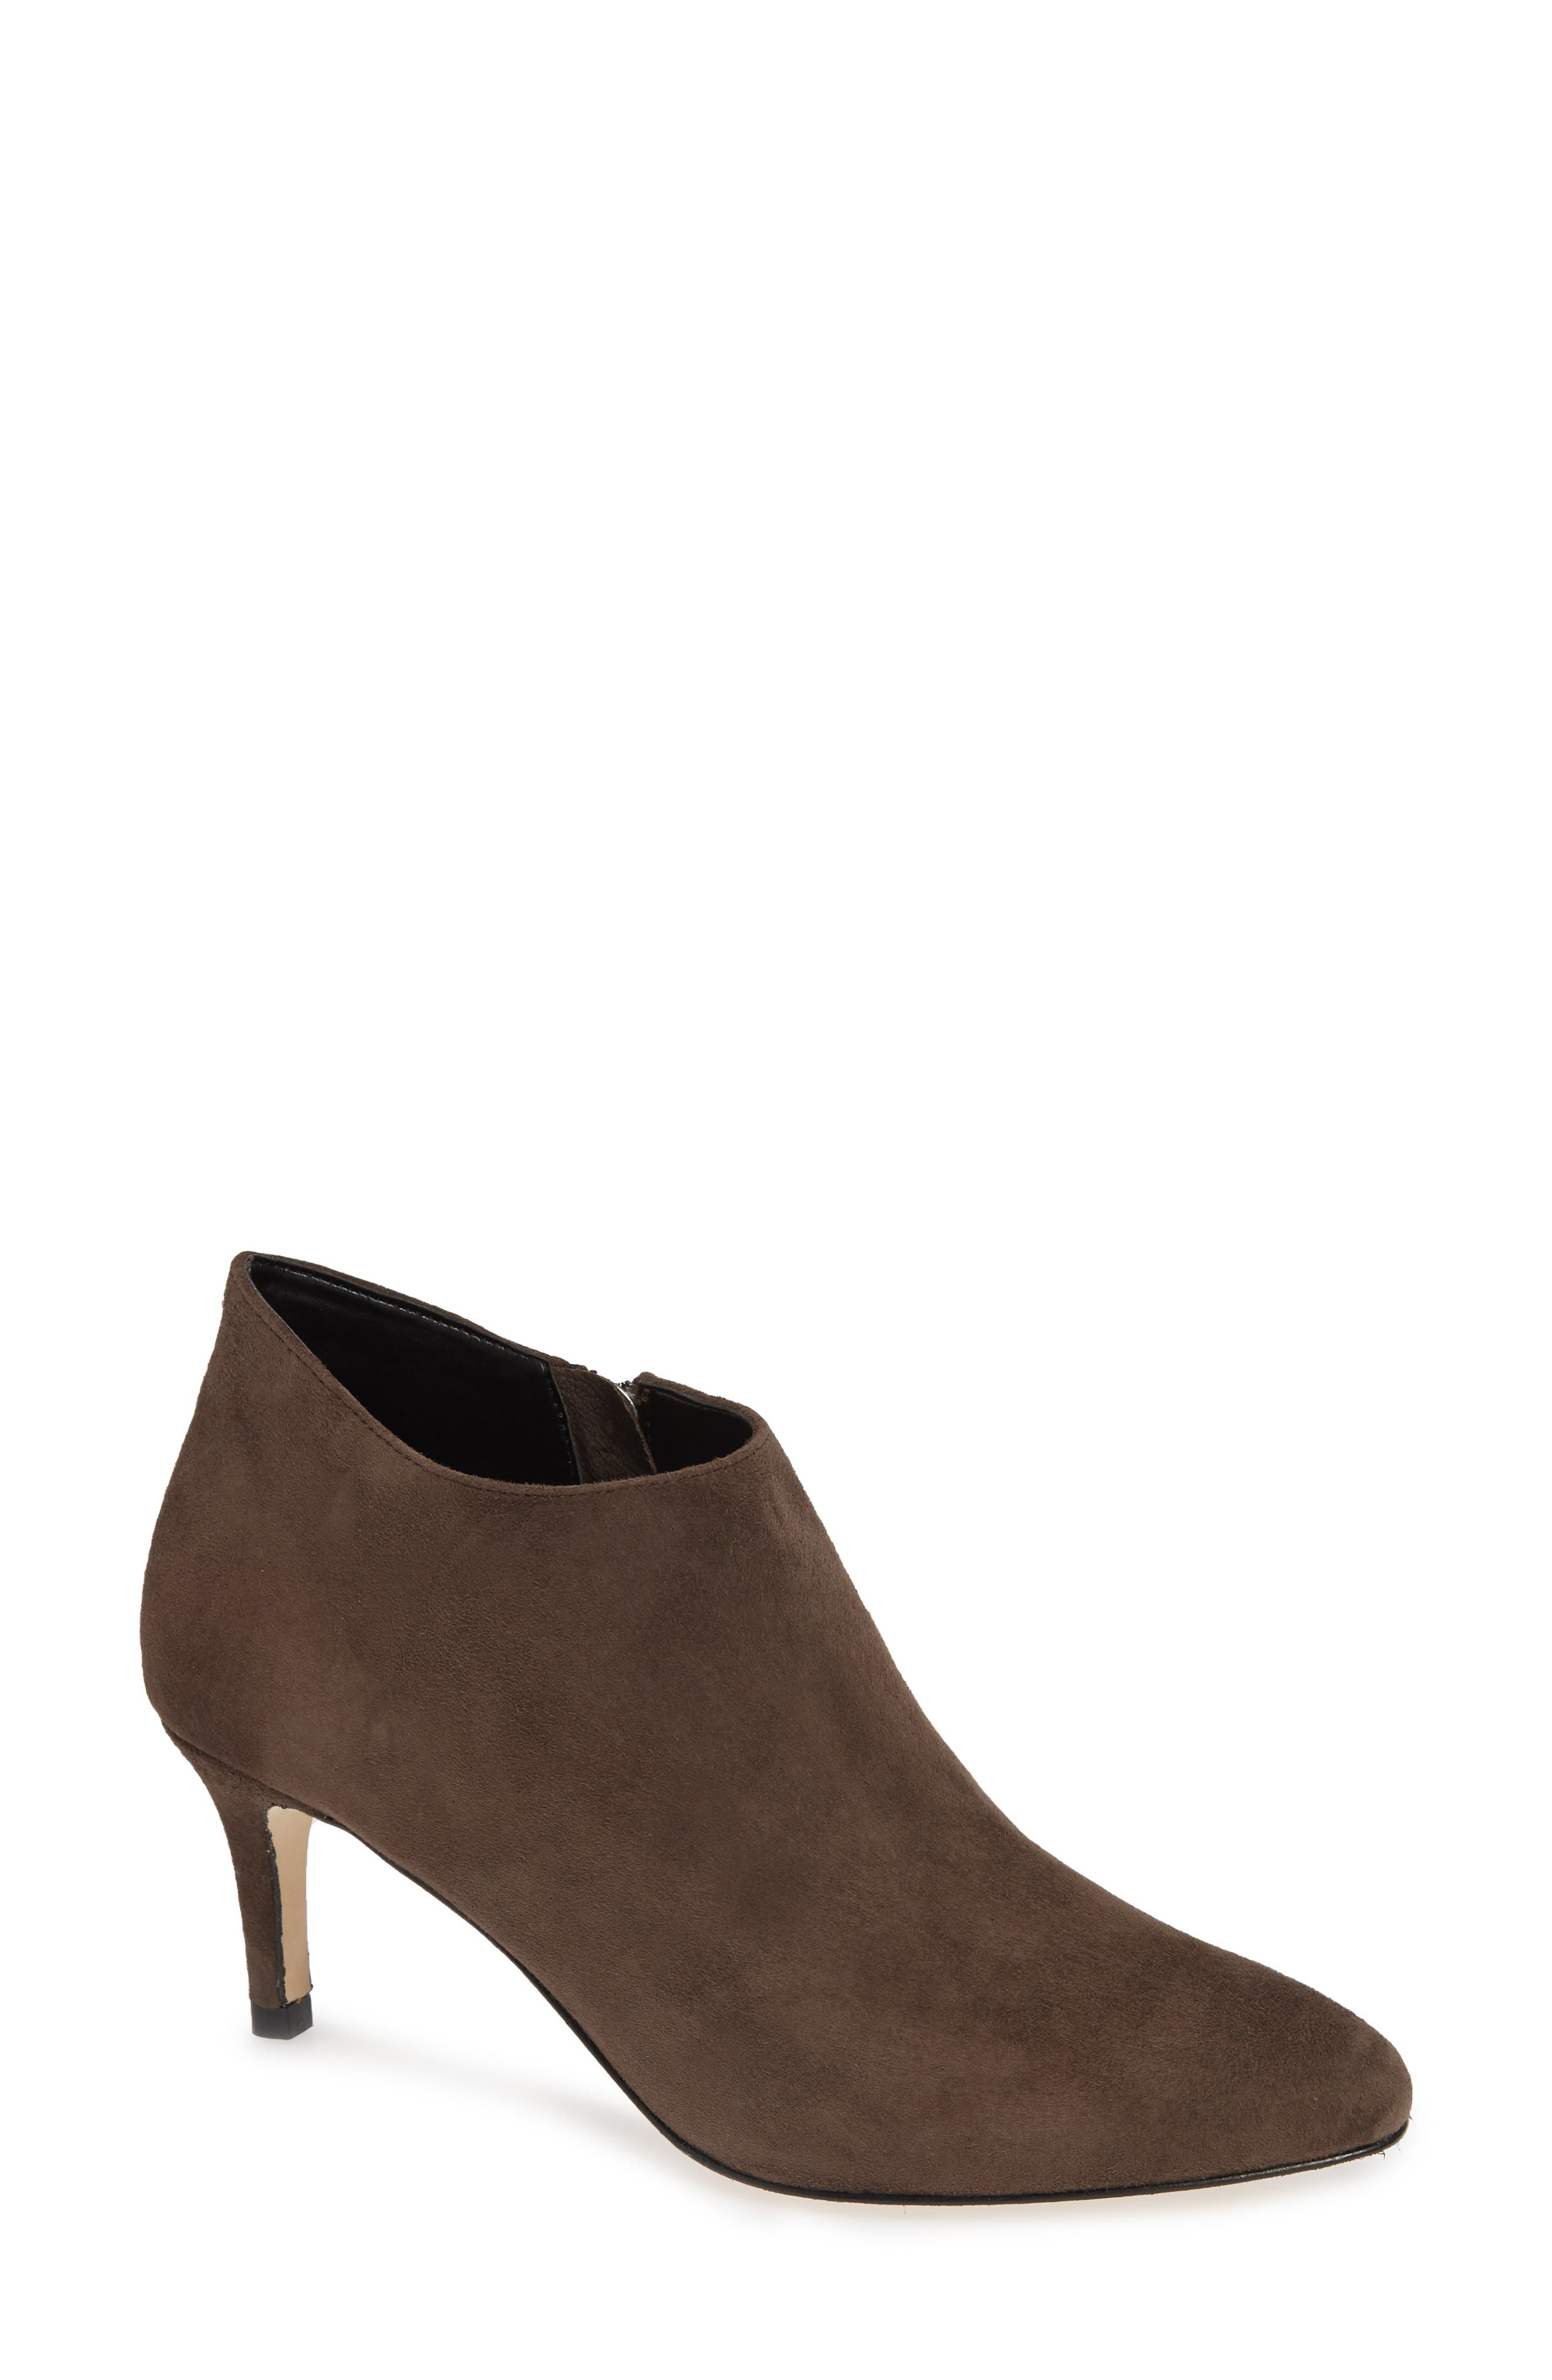 'Yelm' Almond Toe Bootie,                             Main thumbnail 1, color,                             MINK SUEDE